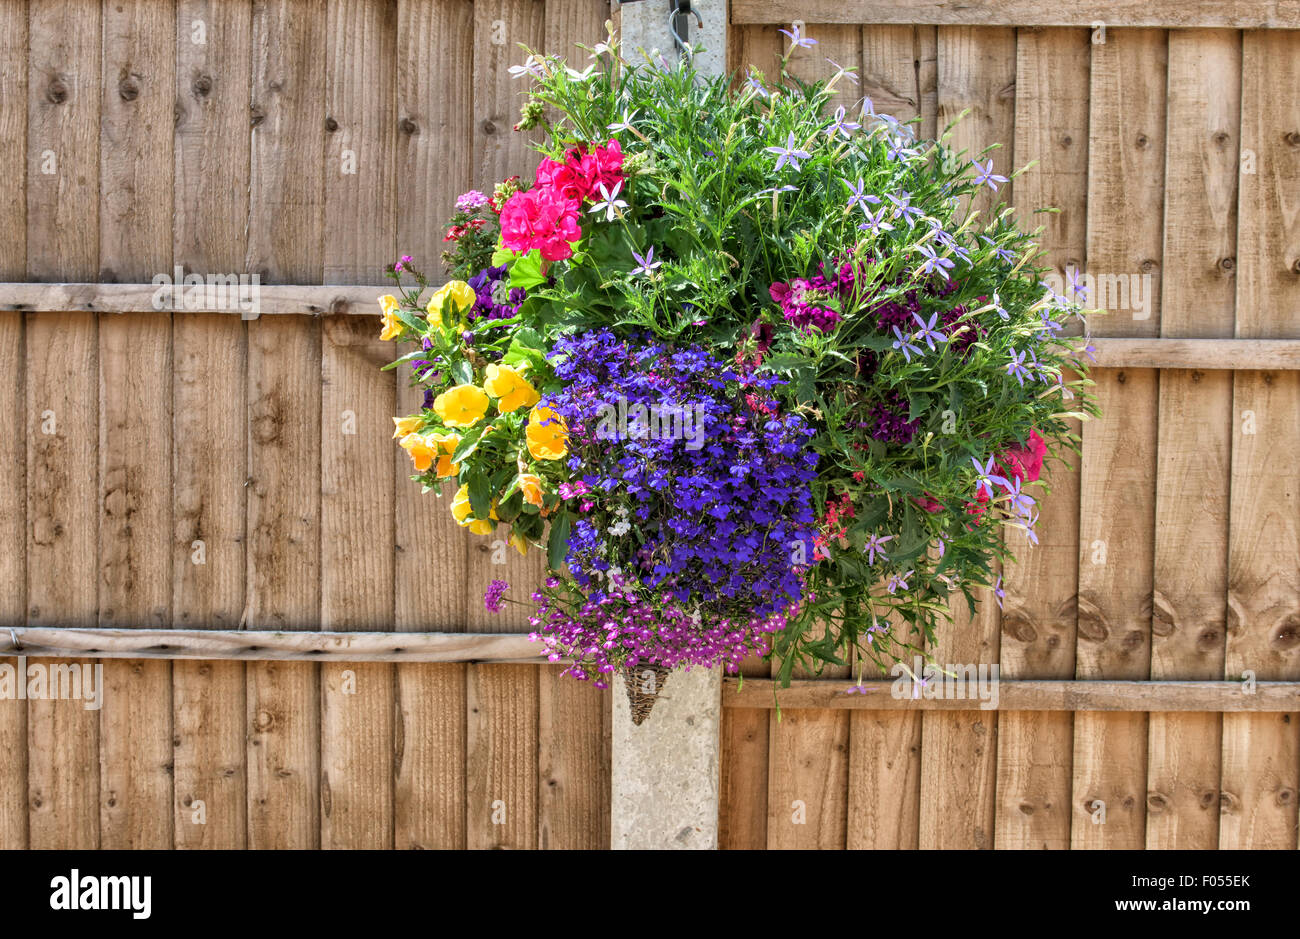 Pretty hanging basket of flowering plants near a wooden fence - Stock Image